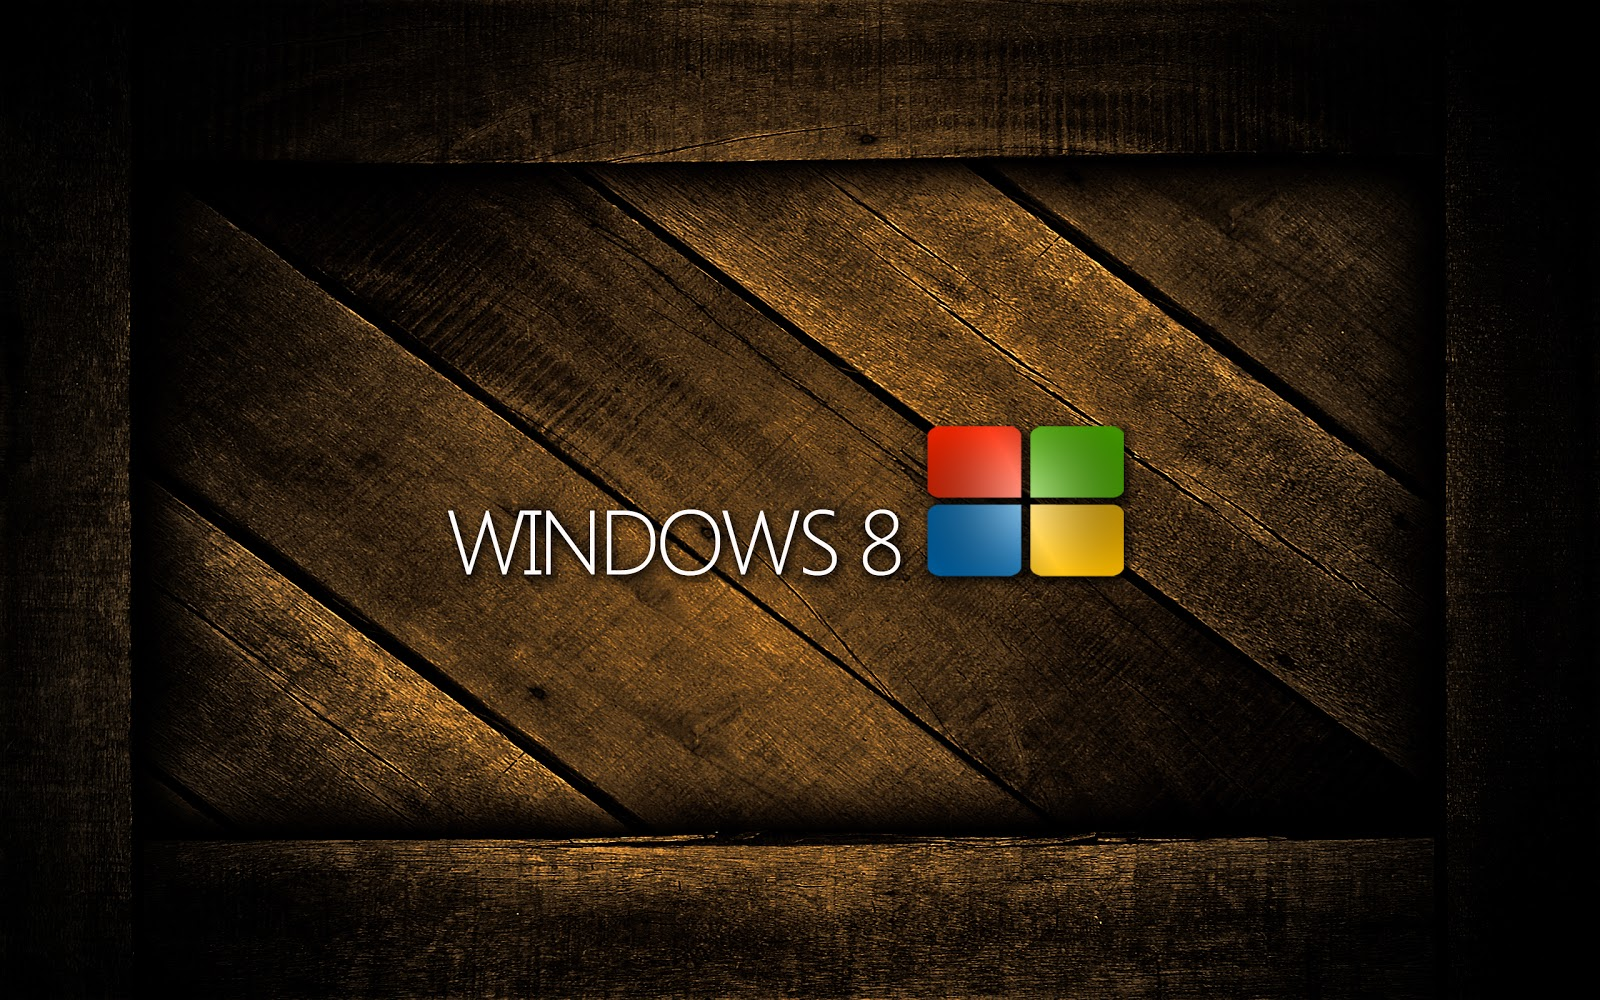 new windows 8 hd wallpapers - photo #20